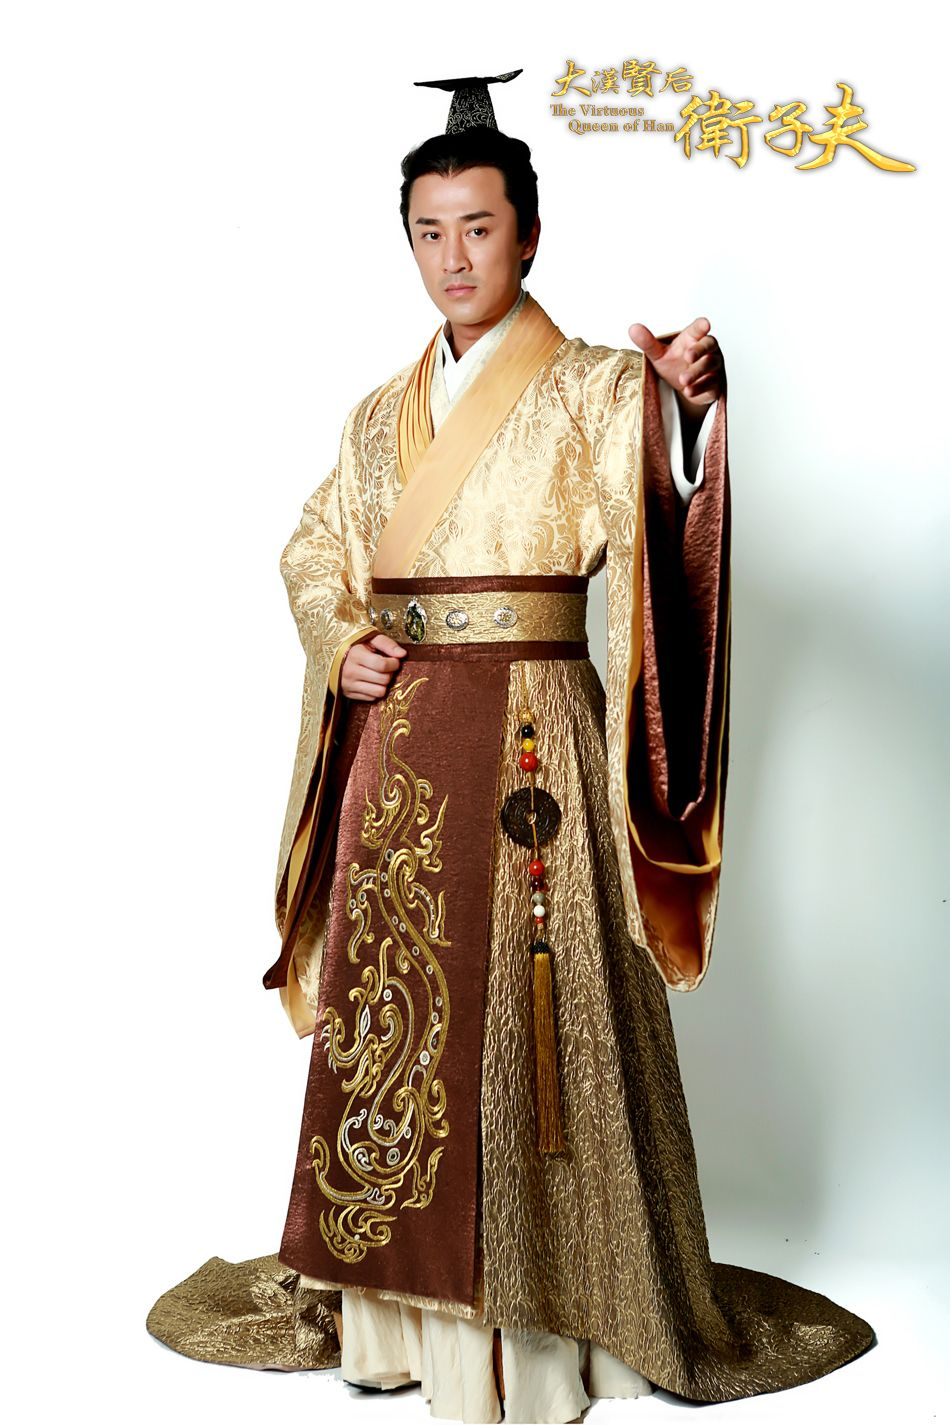 def199160 ... hanfu male costume Ancient Chinese Emperor Costume Gown Robe Wear  ancient emperor cosplay. The Virtuous Queen of Han | Lum Fong